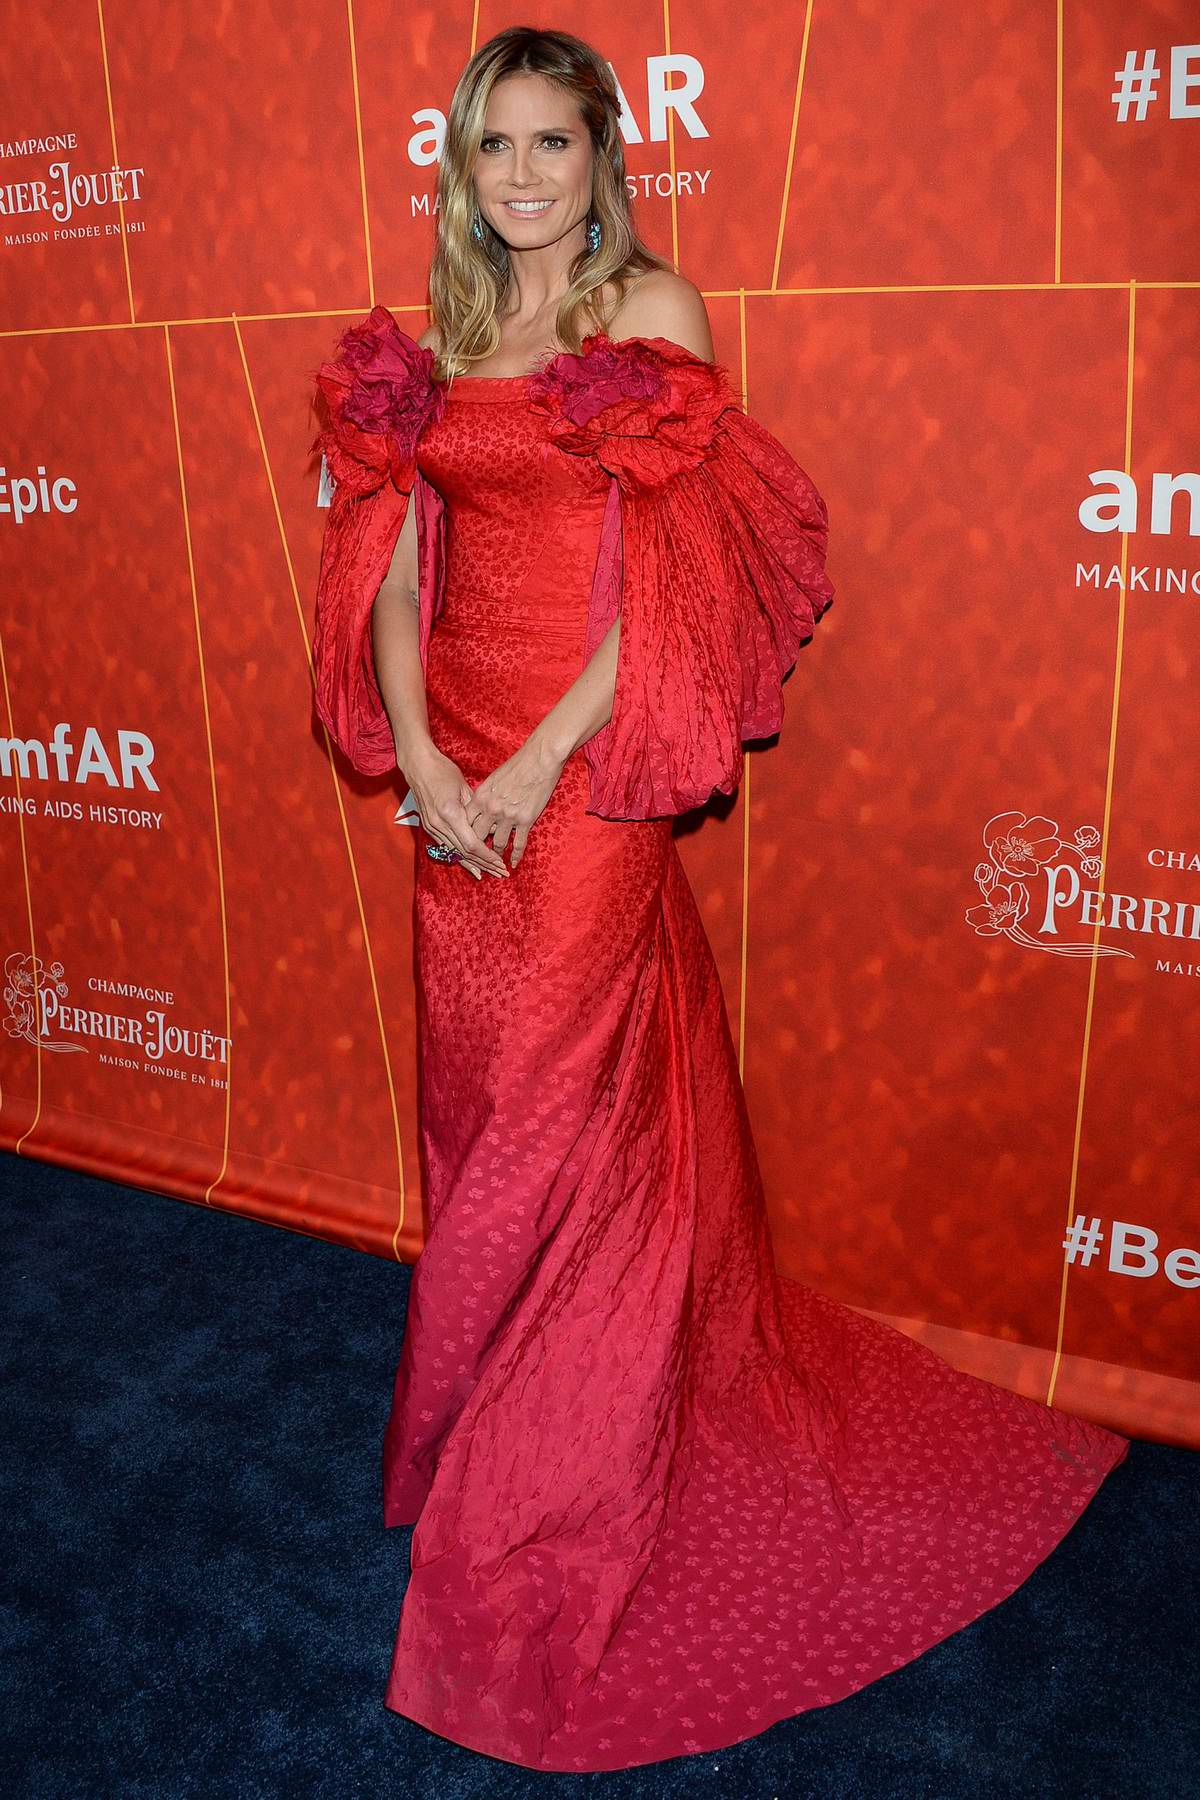 Heidi Klum attends 2018 amfAR Inspiration Gala at Wallis Annenberg Center for the Performing Arts in Beverly Hills, Los Angeles